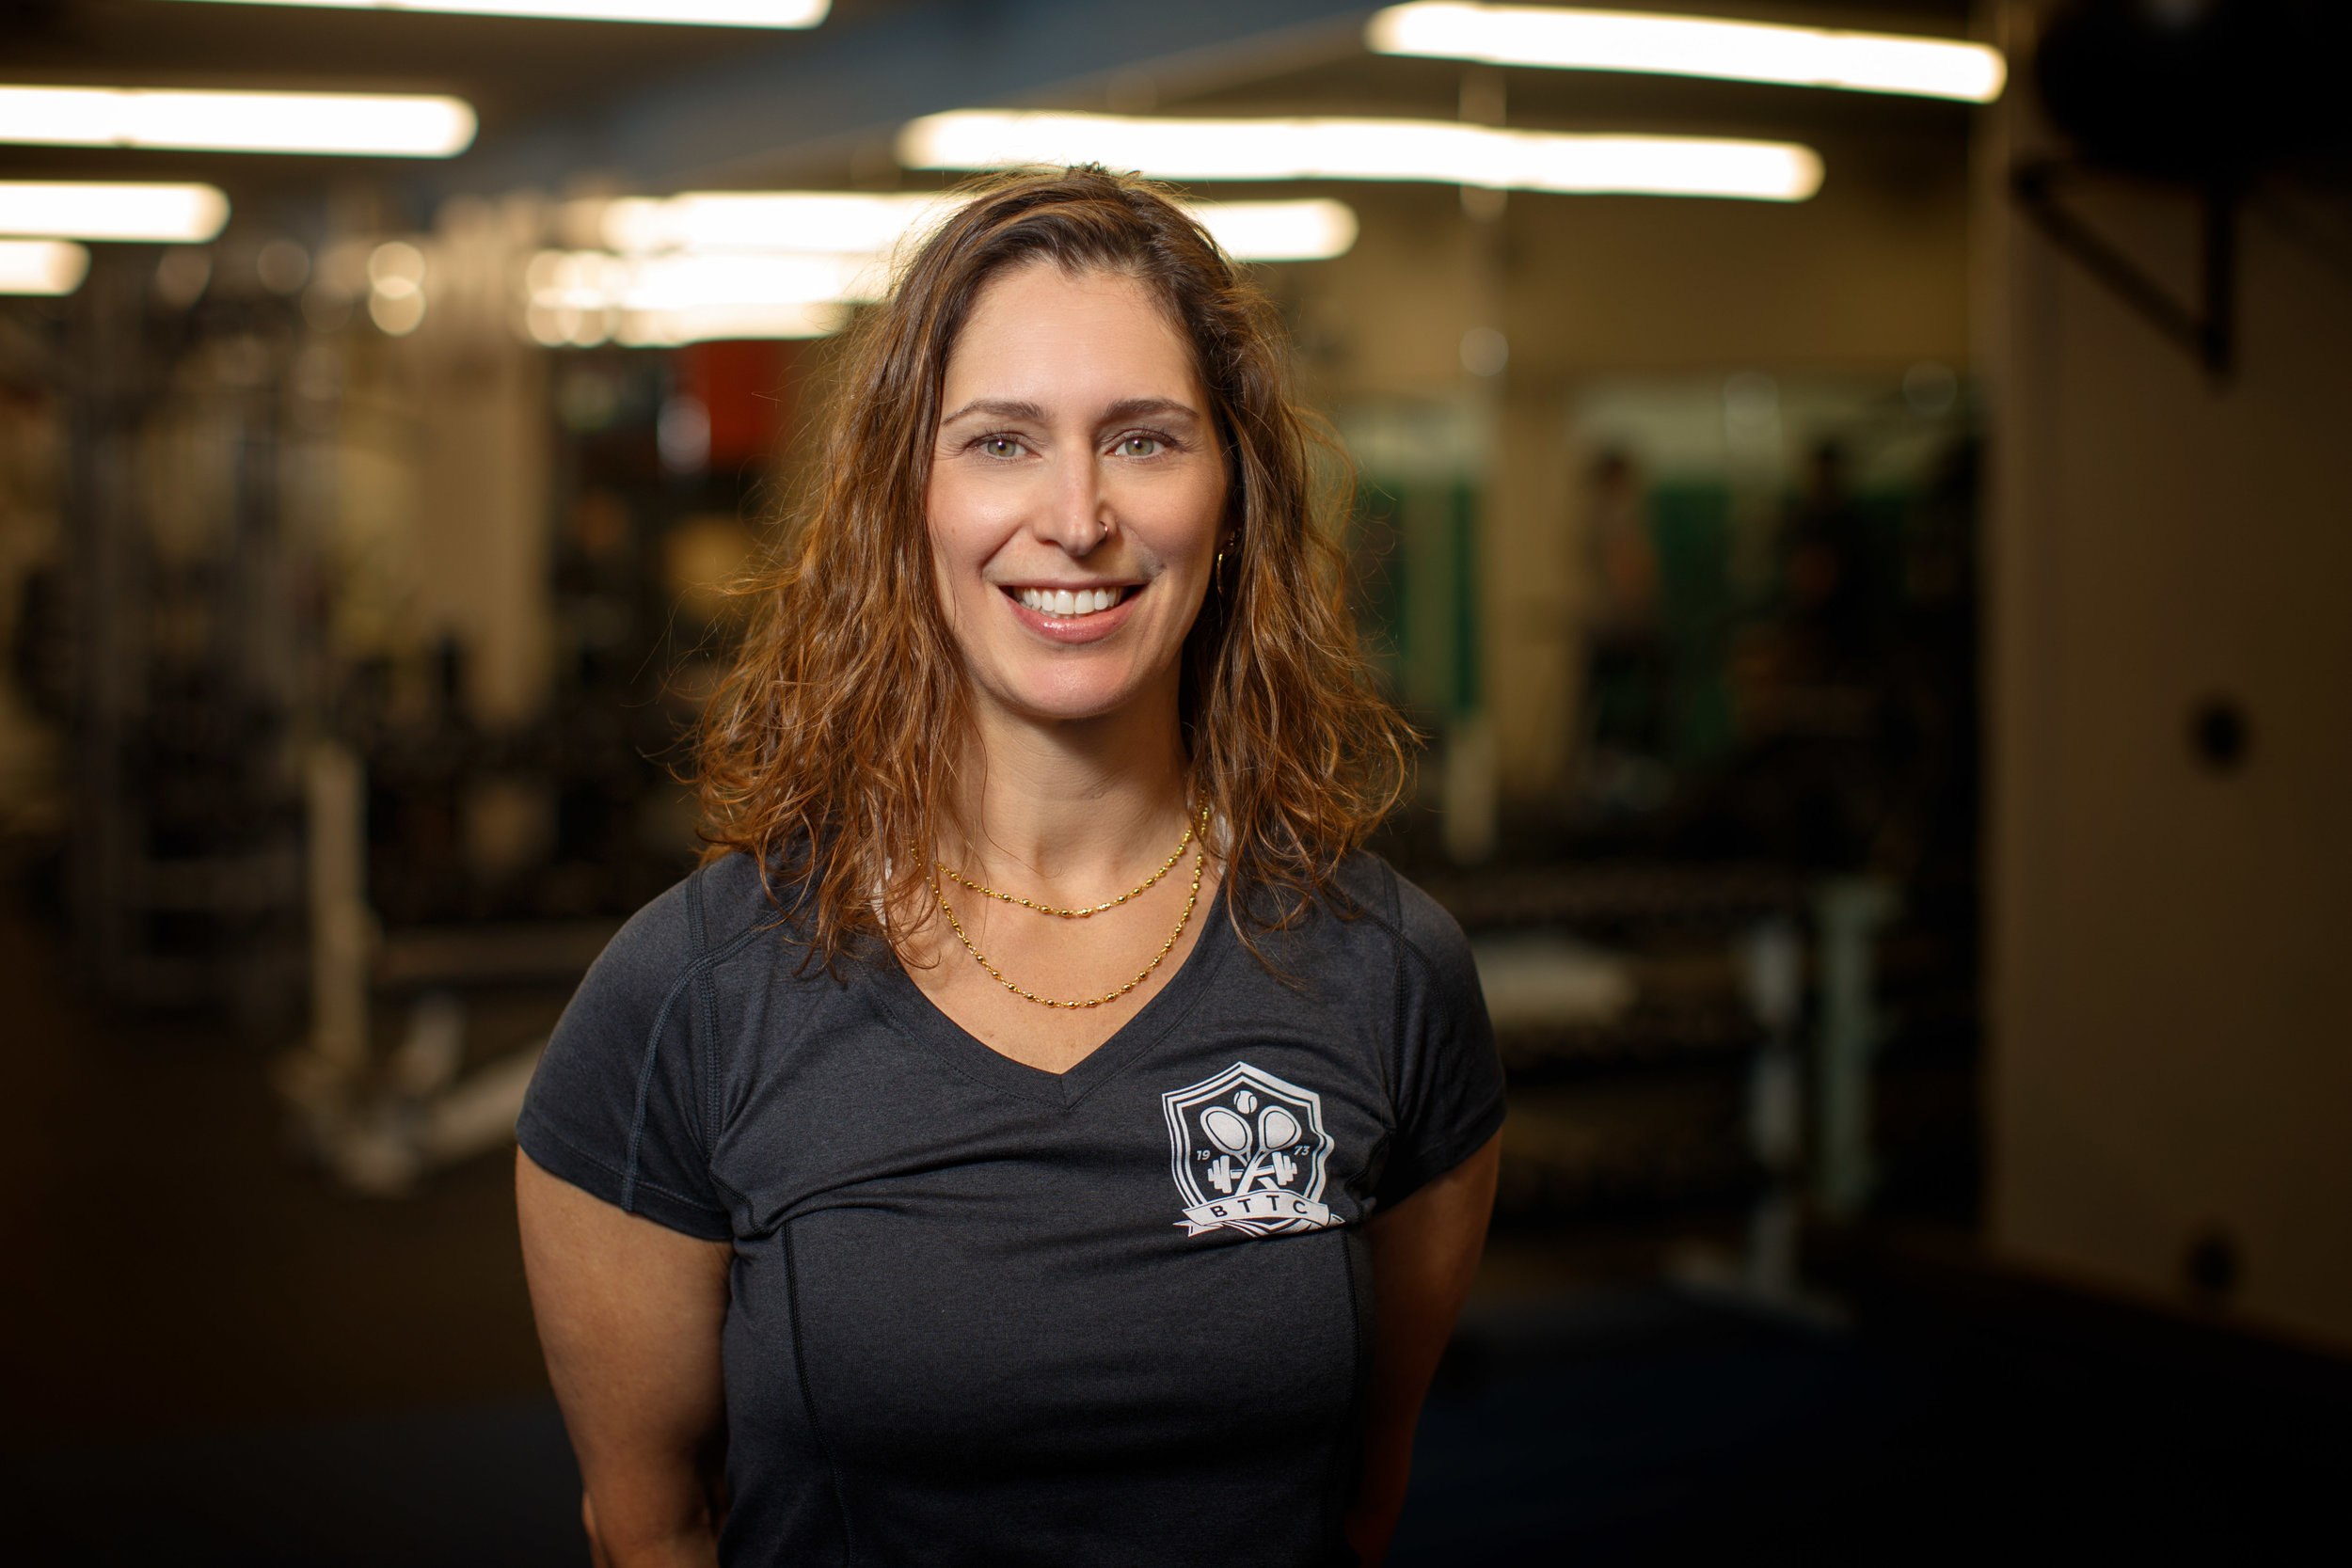 Roxanne Sailors ACE Certified Personal Trainer Fitness Nutrition Specialty Certified Clubbell Athletics Coach Certified Clubbell Yoga Coach Certified Fitness Nutrition Specialist Certified Functional Training Specialist